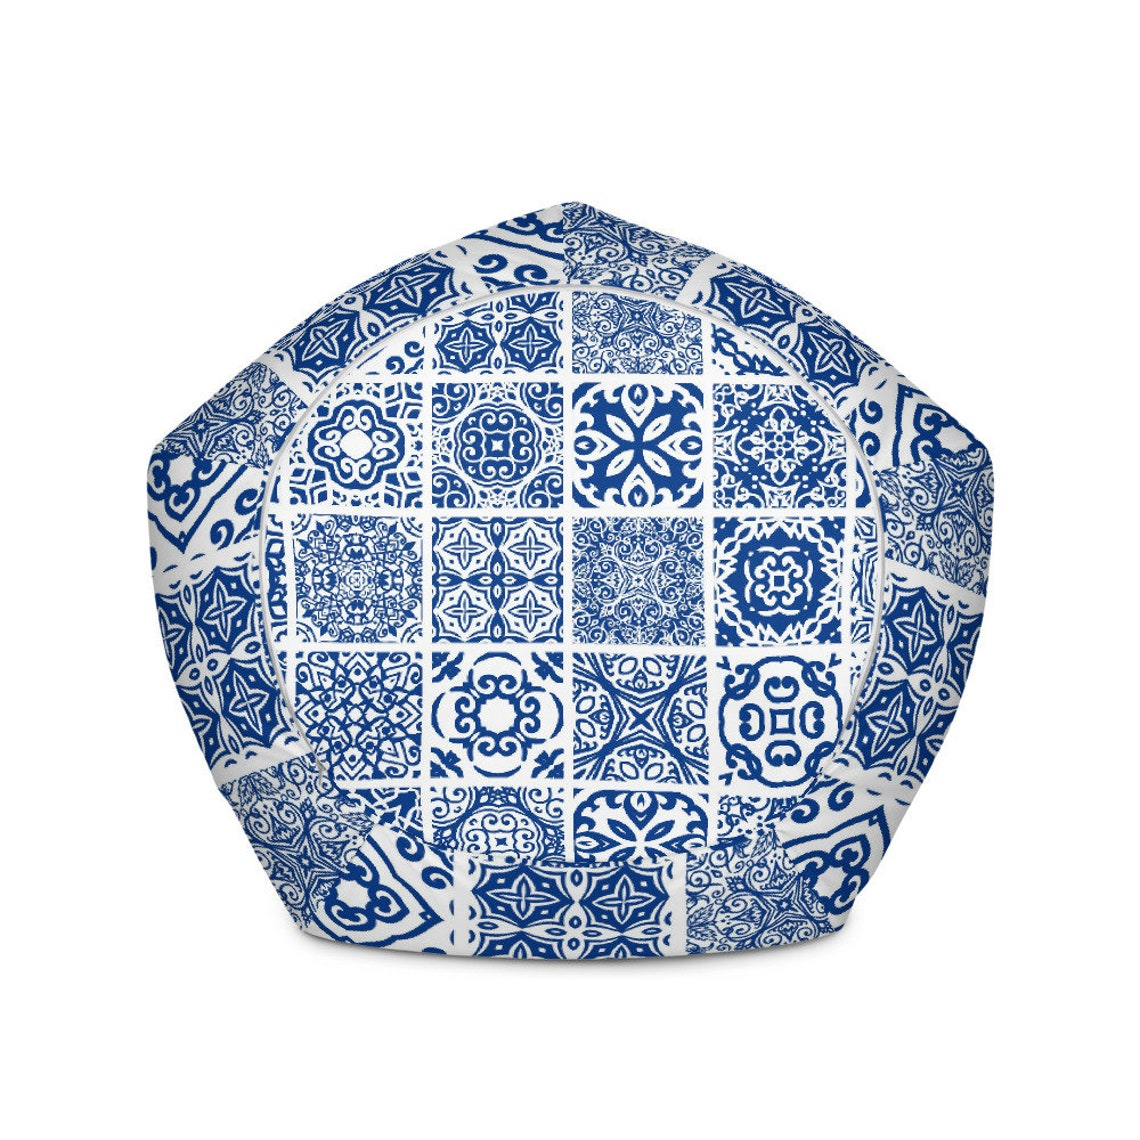 Spanish Tile Bean Bag Chair w/ filling | Old World | Tuscan Interior | Mediterranean Style | Blue and White | Home Accents | Seating | Hygge